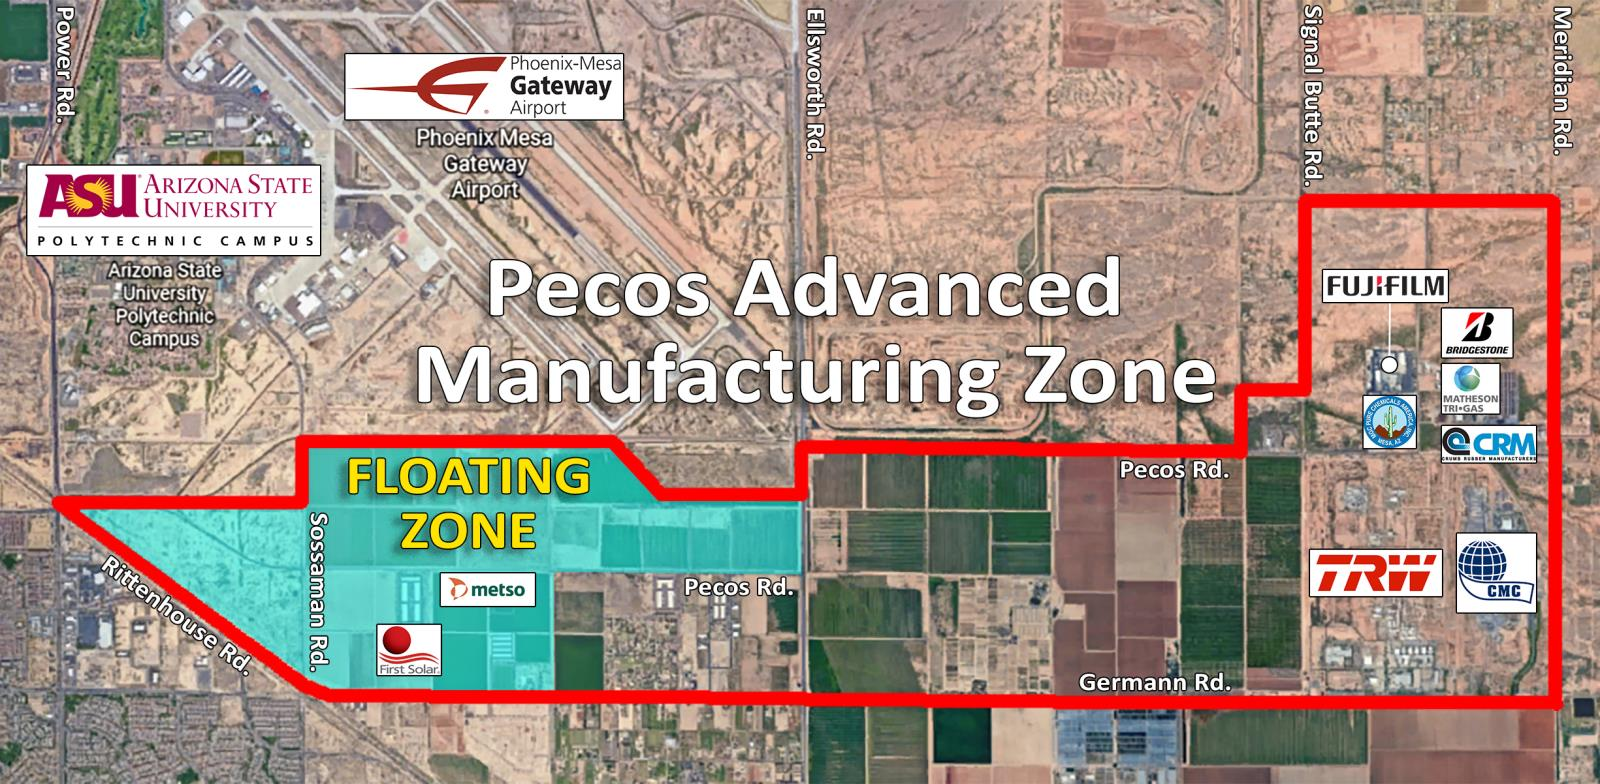 Pecos Advanced Manufacturing Zone | City of Mesa